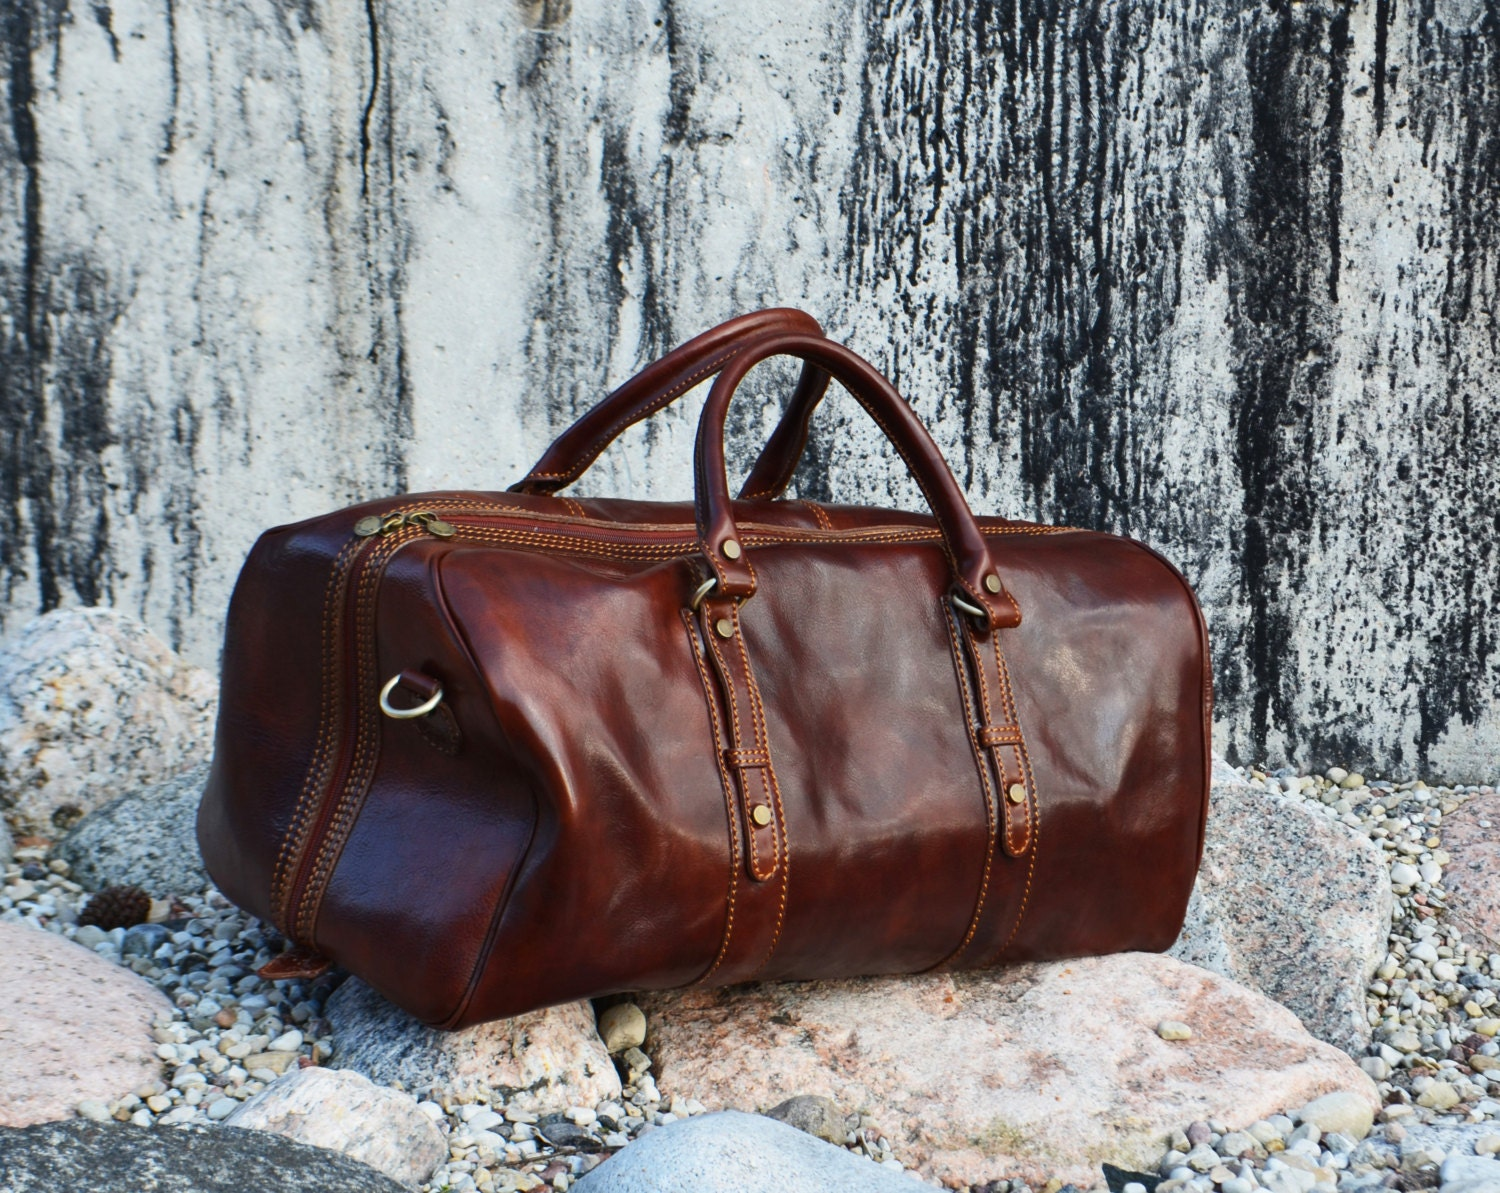 Popular items for duffle bag on Etsy